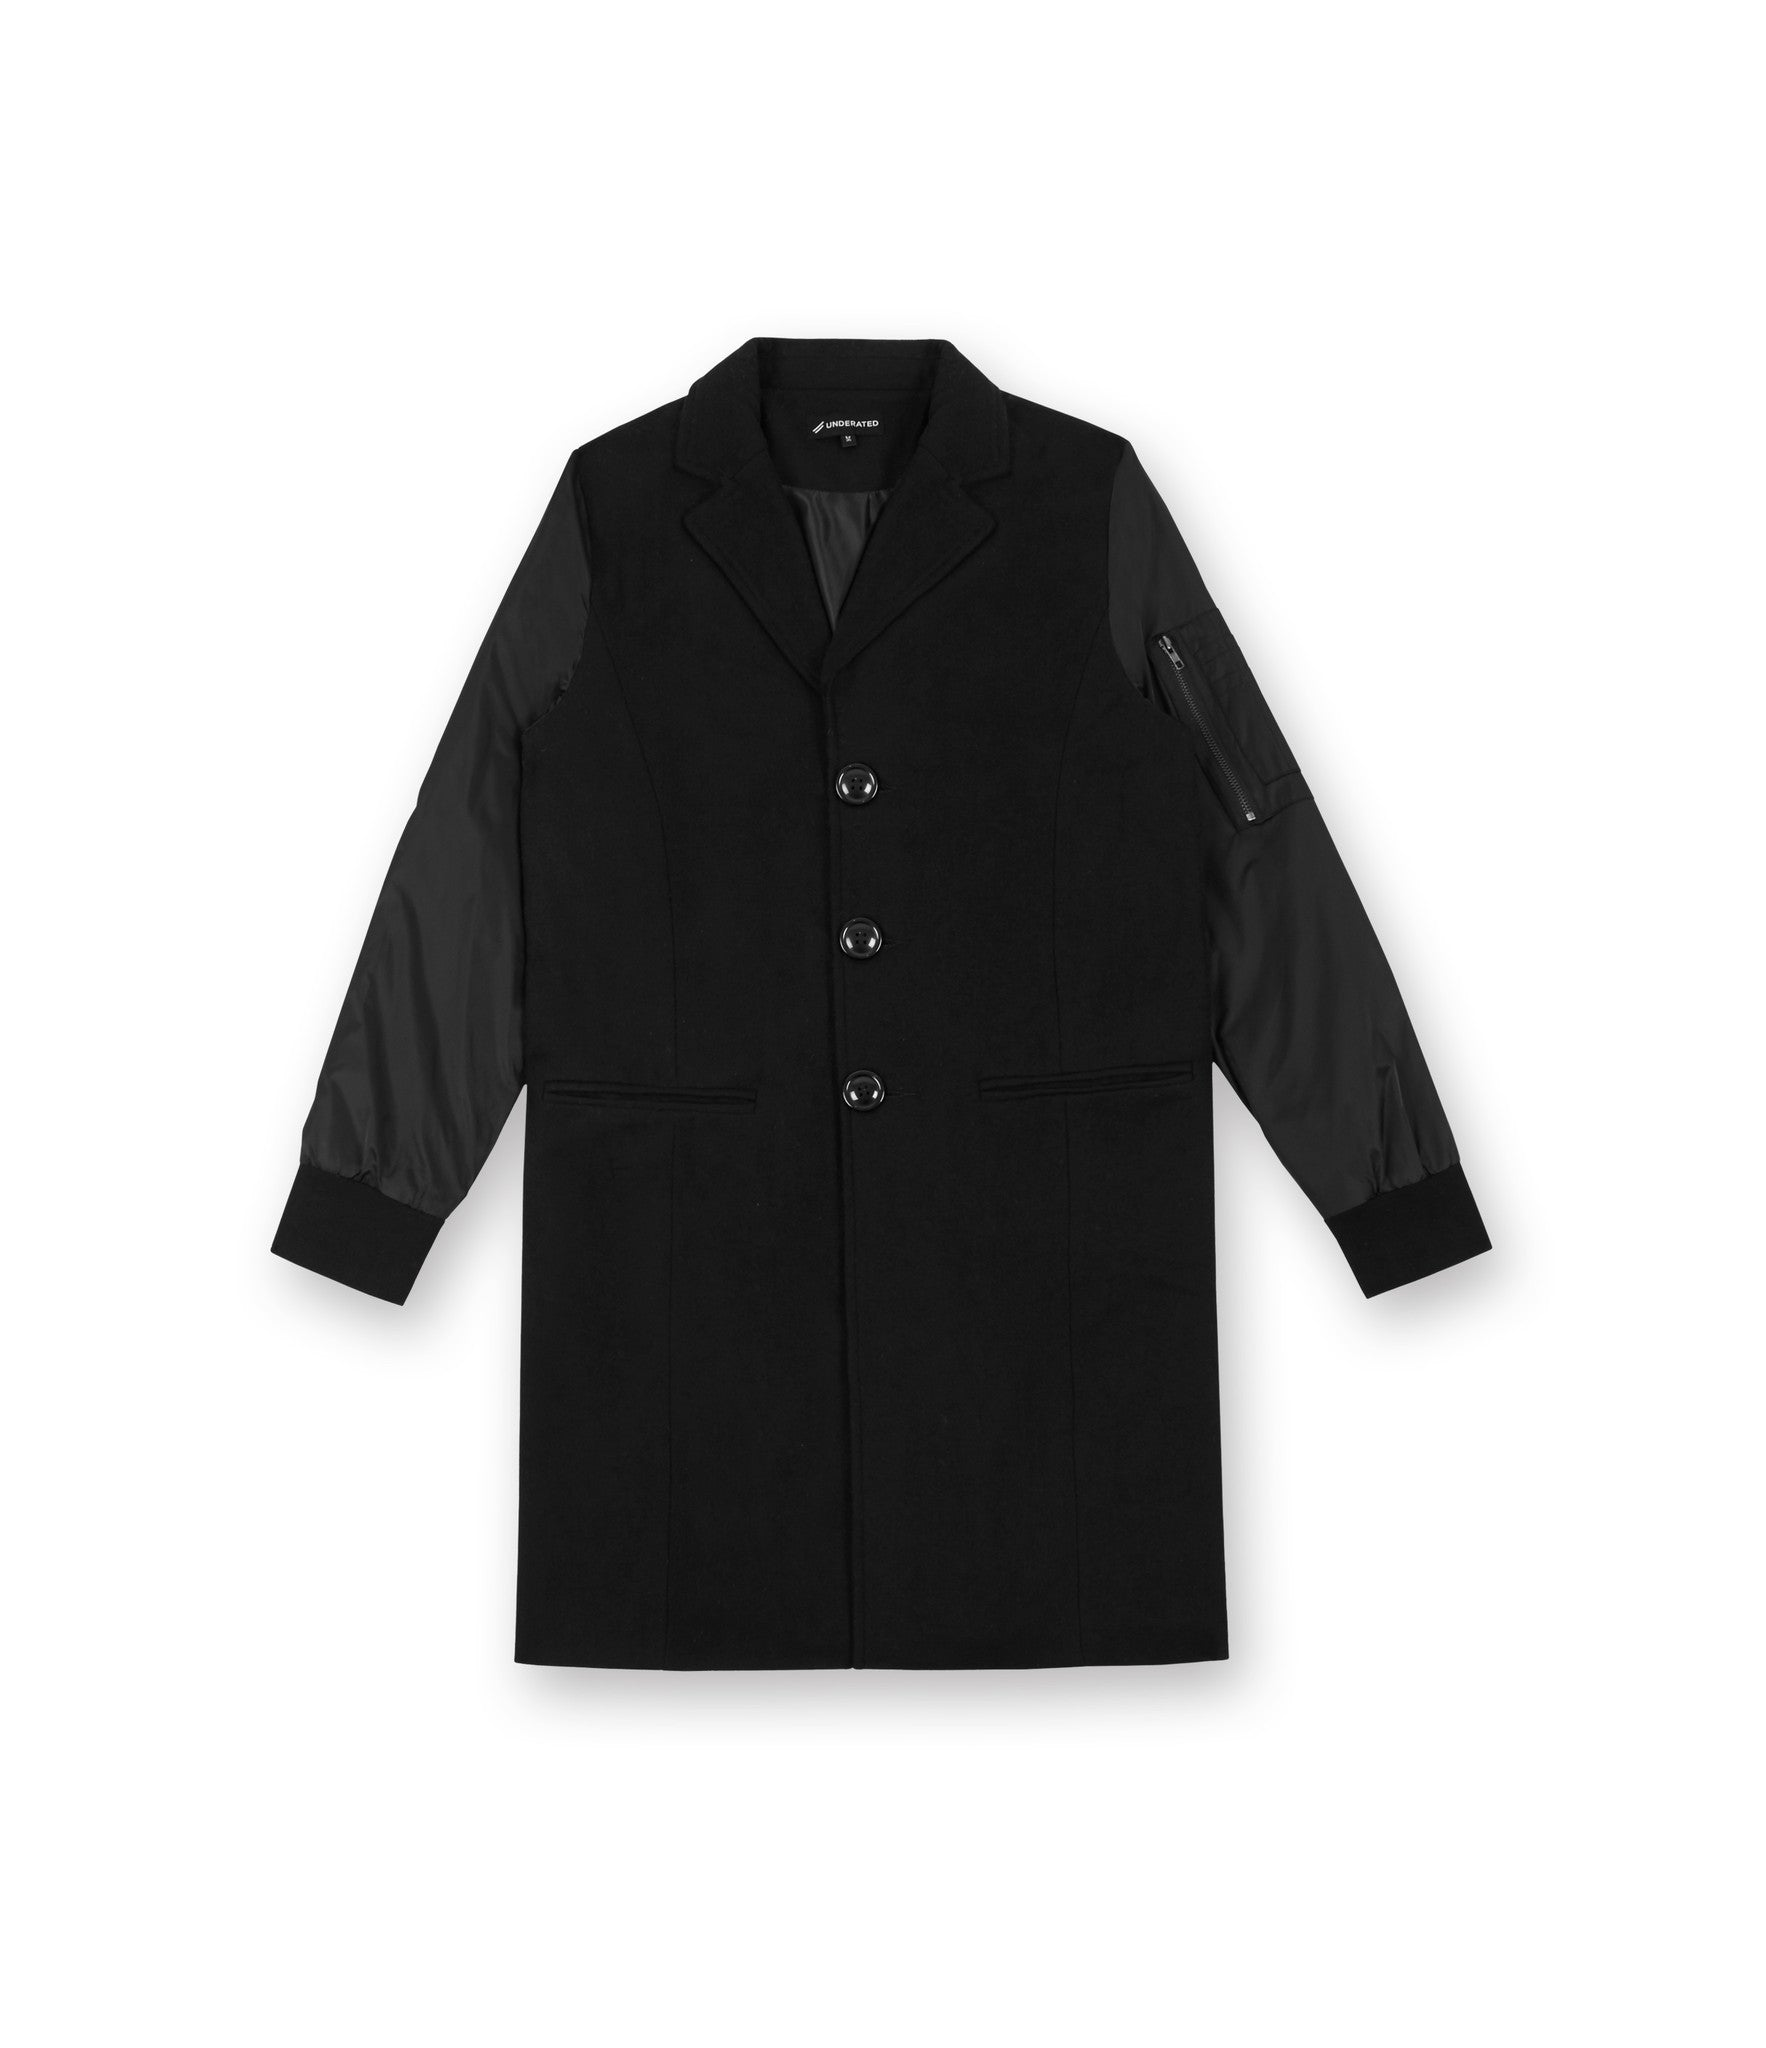 JK215 Hybrid Overcoat - Black - underated london - underatedco - 2